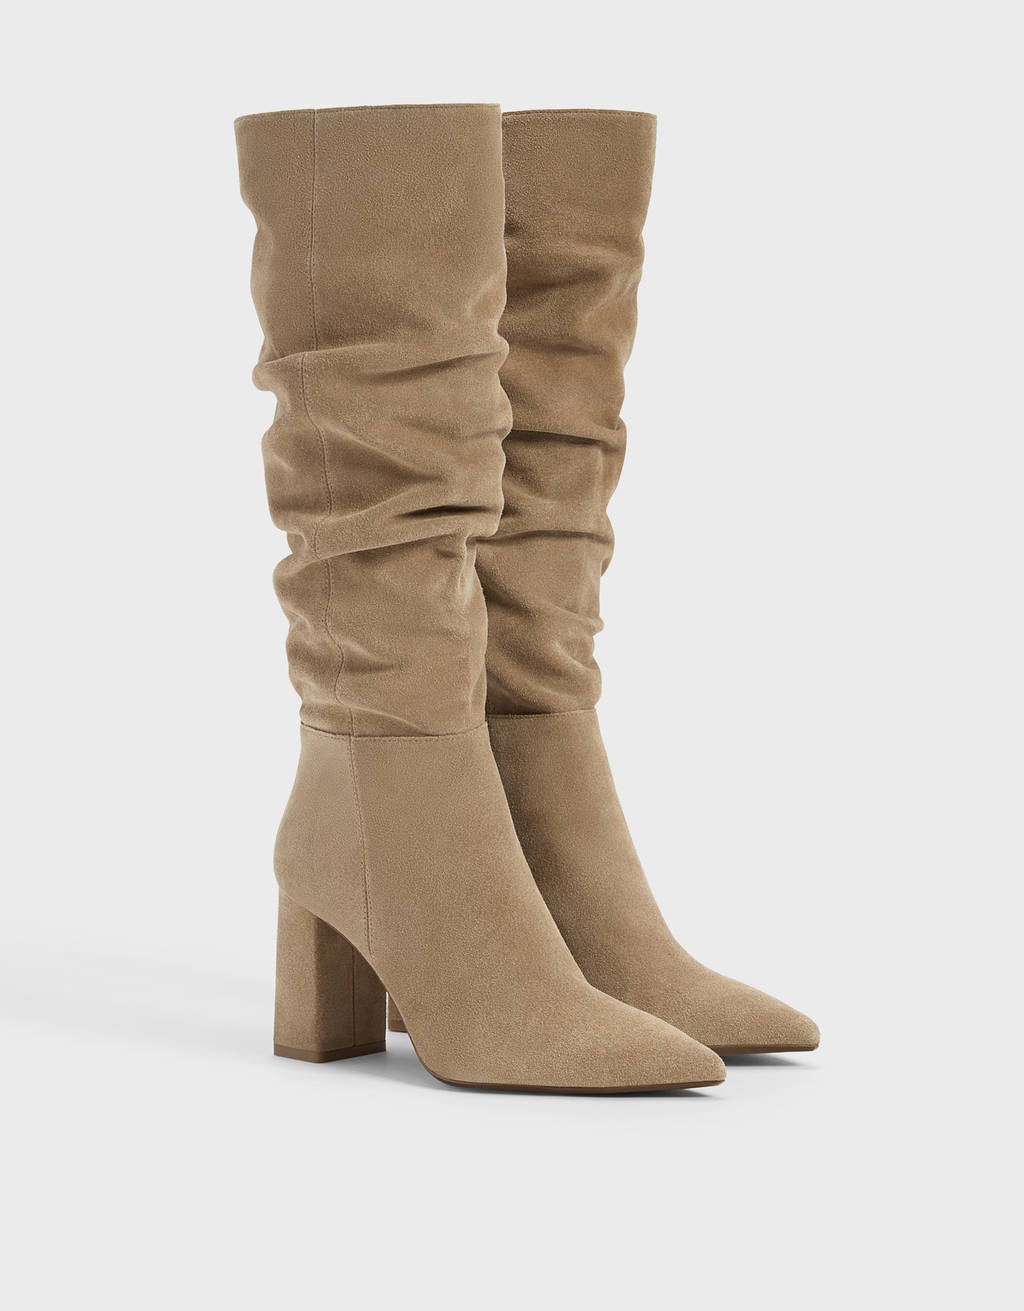 LEATHER slouched boots